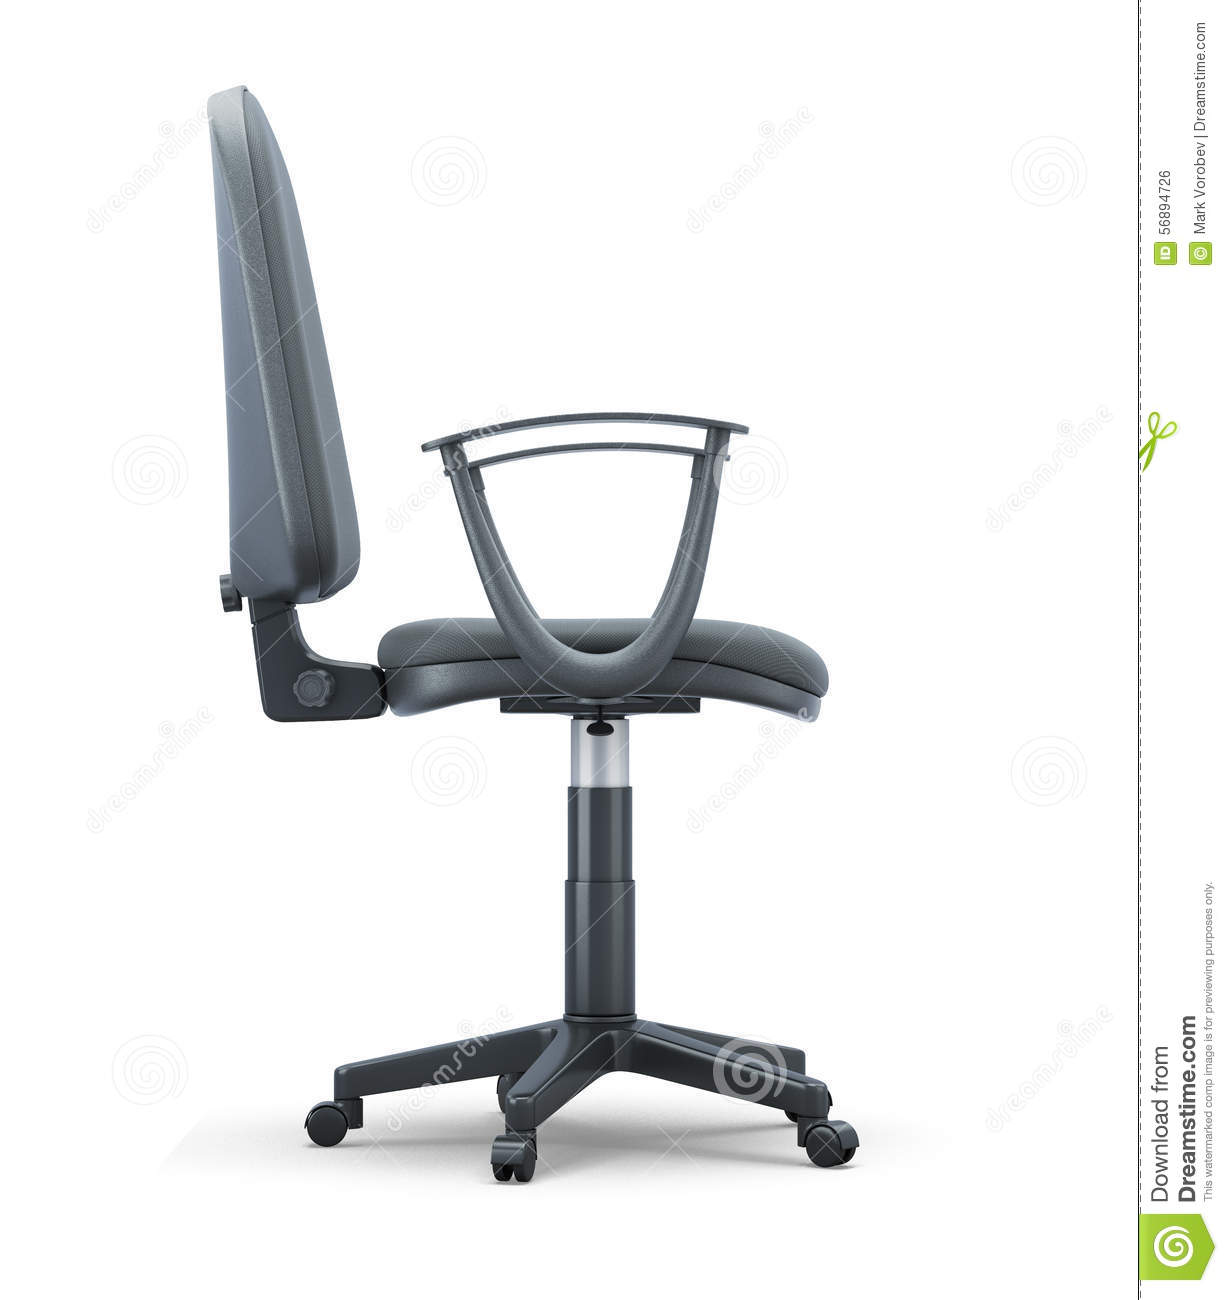 office chair illustration chiffon covers side view on a white stock isolated background 3d render image more similar illustrations